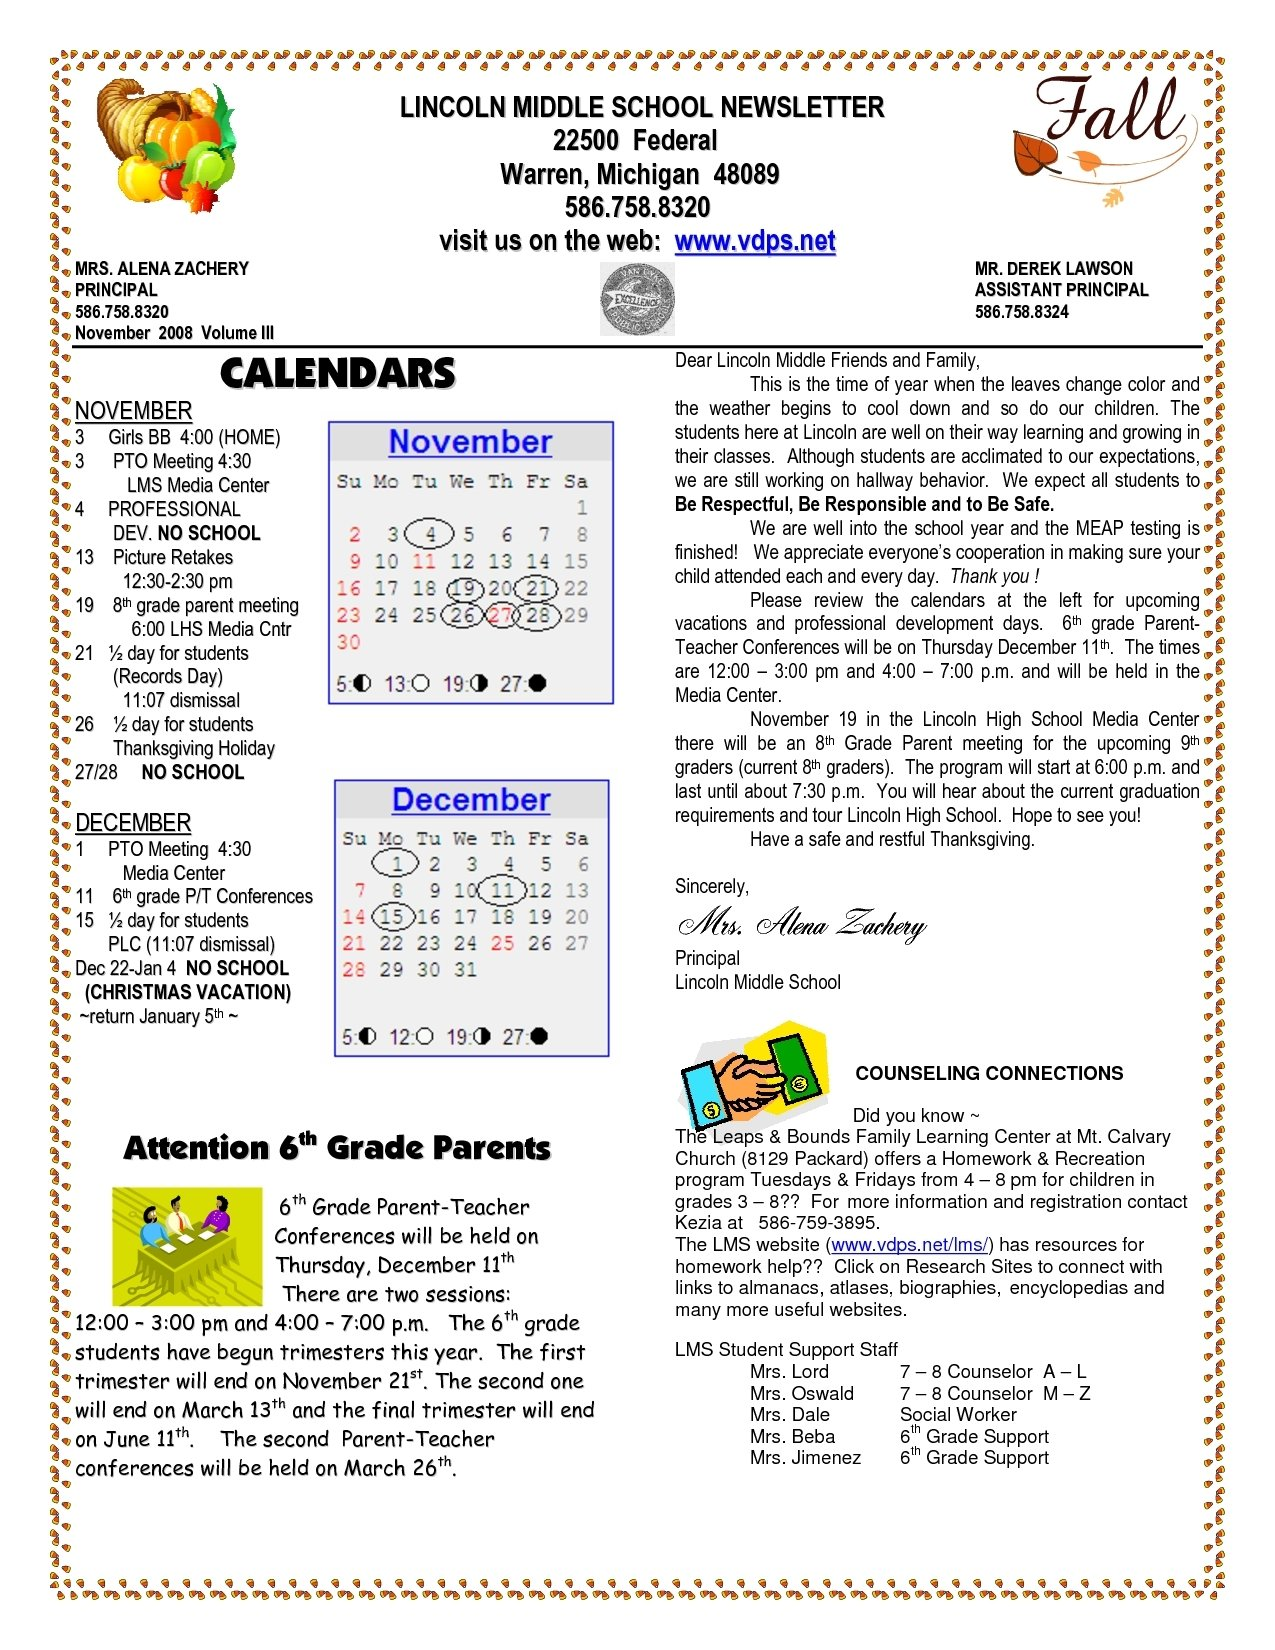 10 Attractive Middle School Newspaper Article Ideas school newsletter templates lincoln middle school newsletter 2020